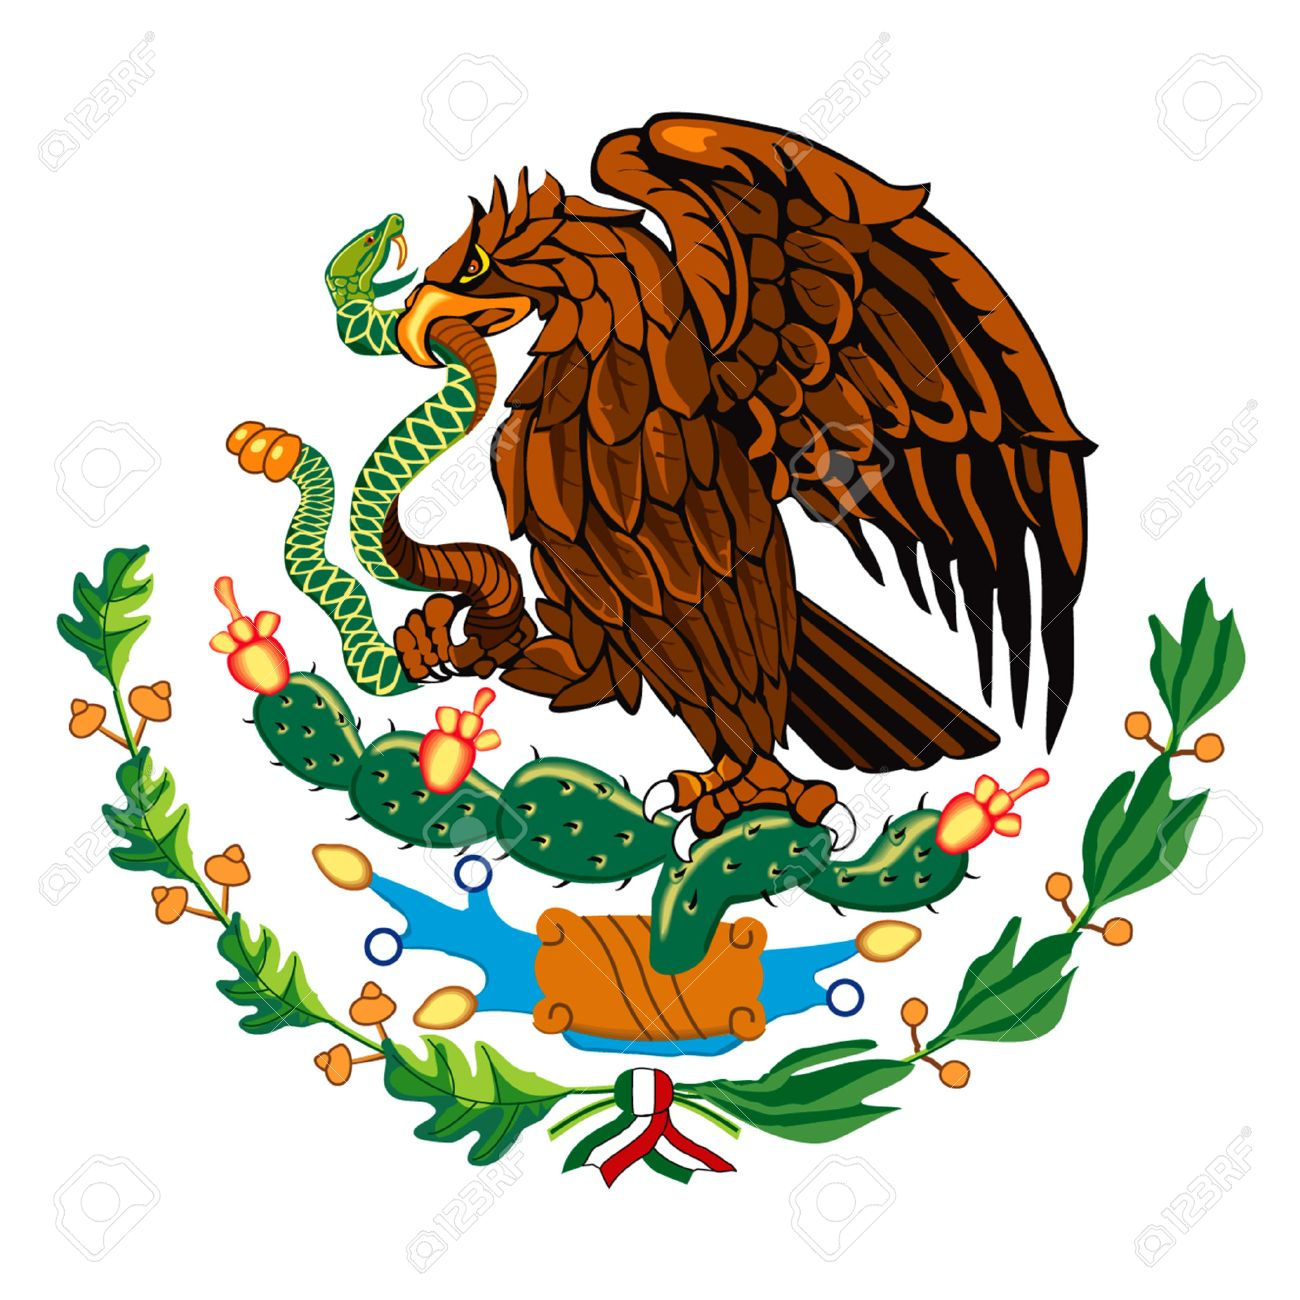 Image result for picture of the mexican flag